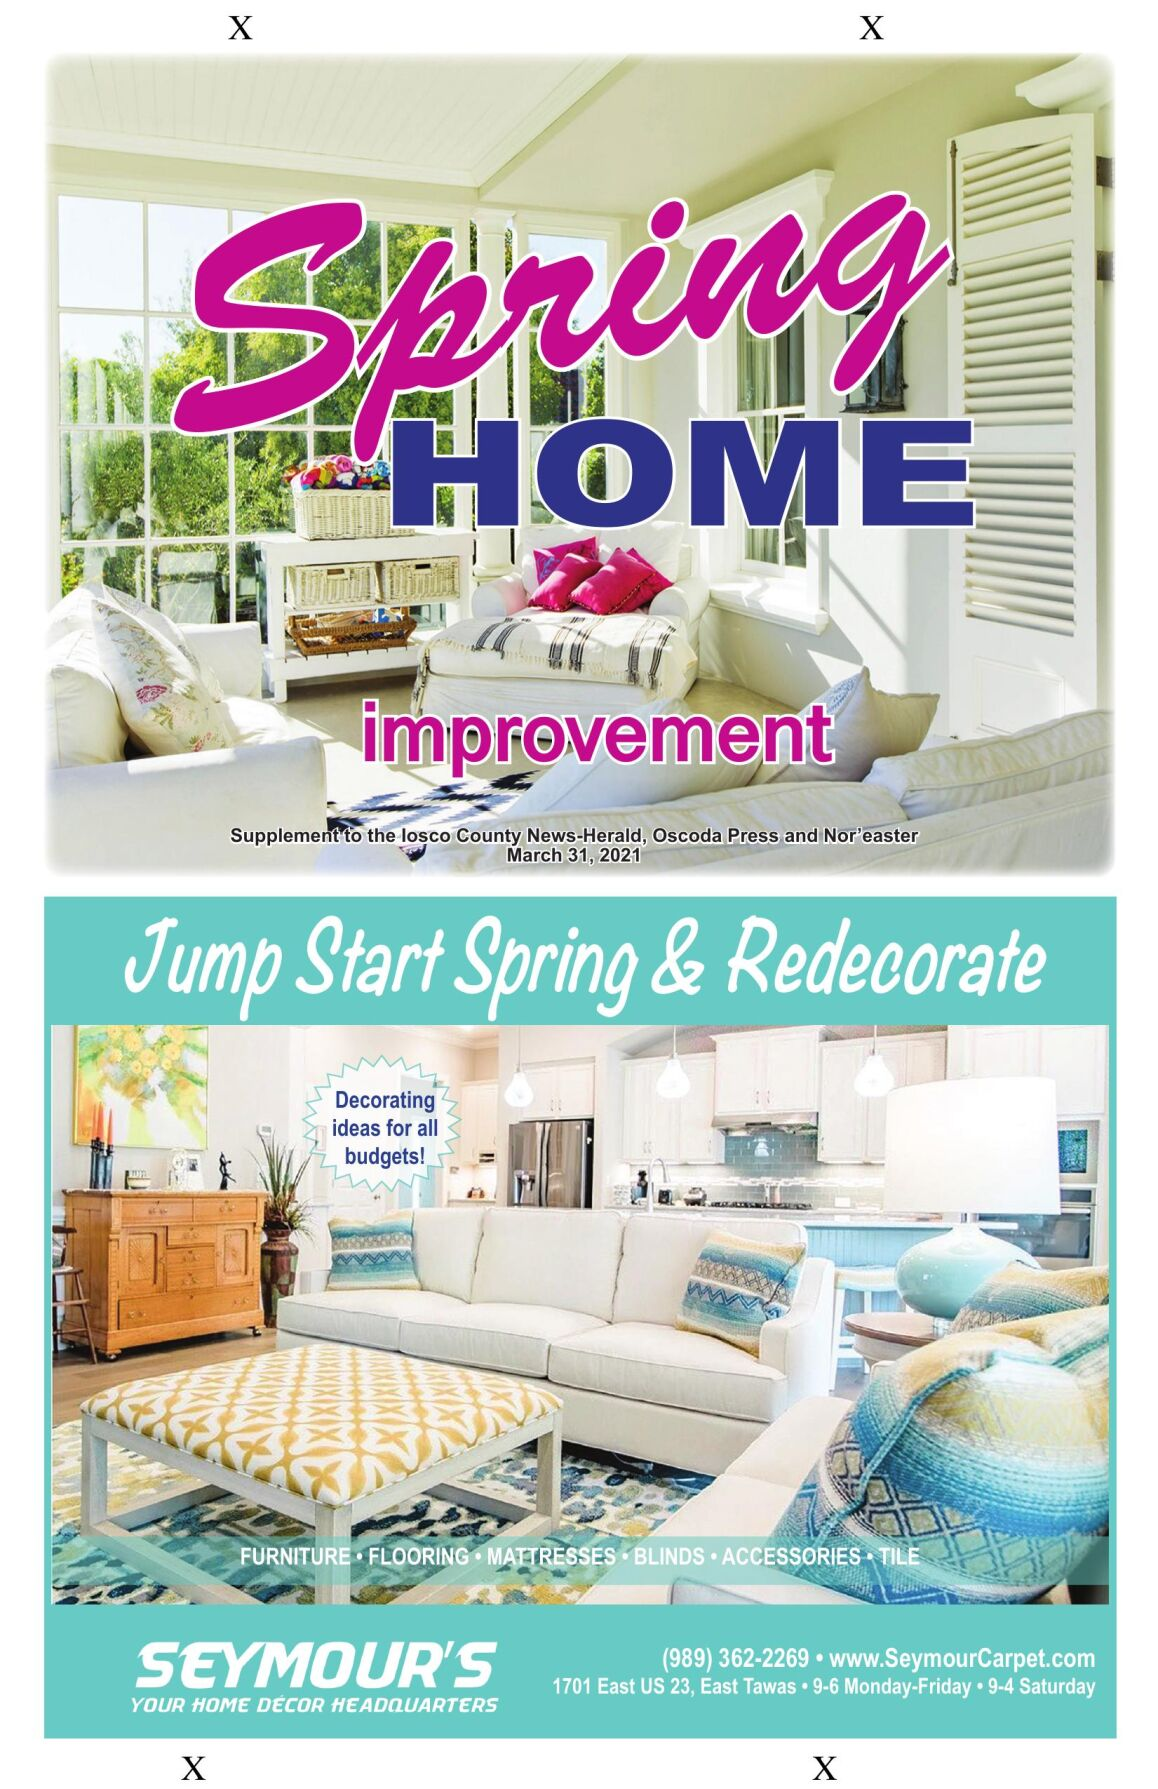 Spring Home Improvement Guide 2021